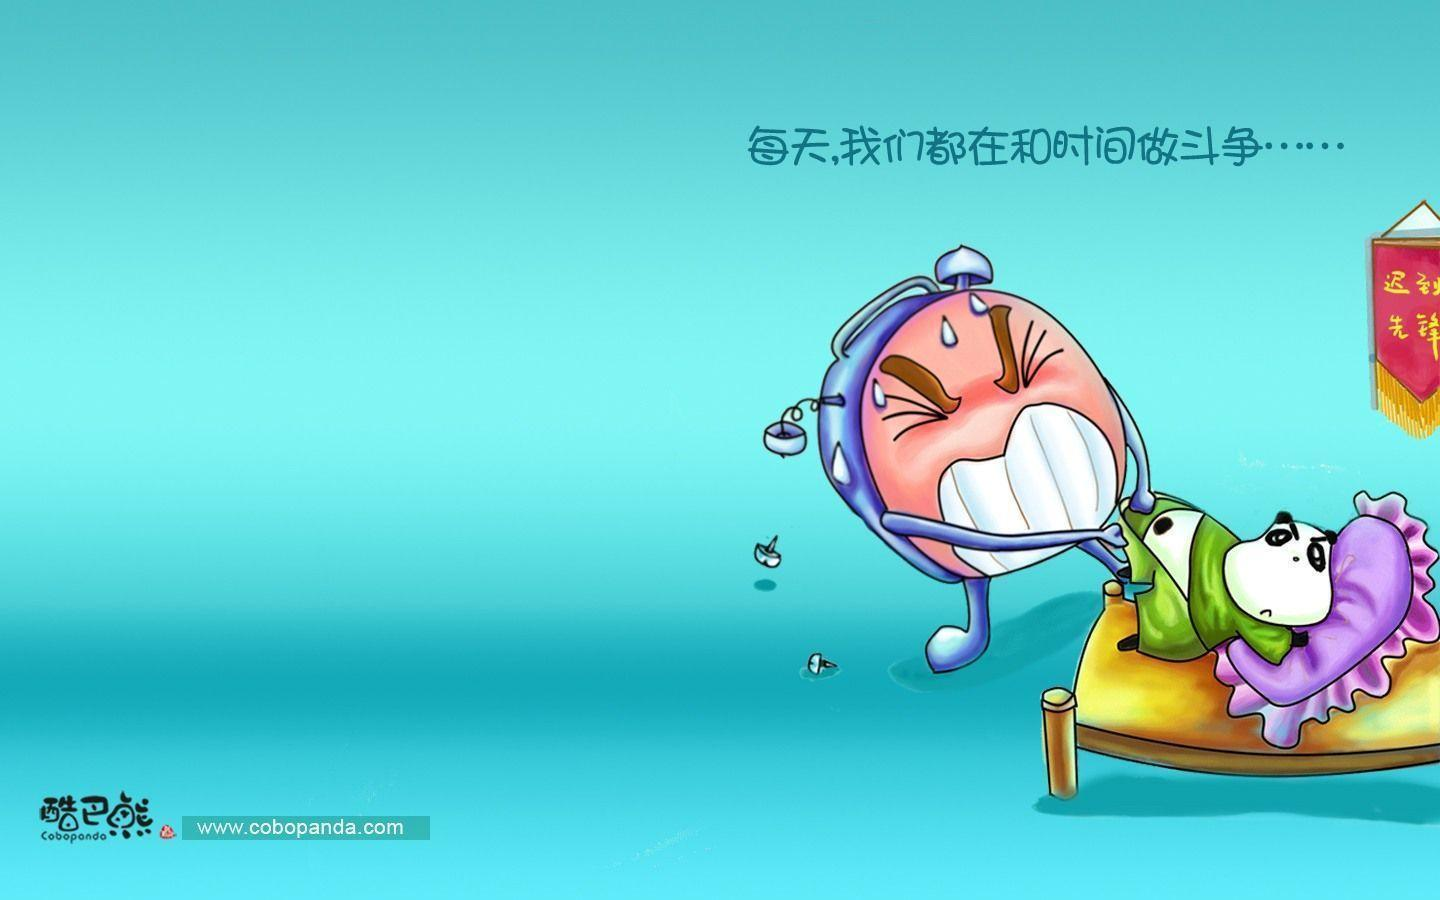 Funny cartoon Wallpapers For Desktop - Wallpaper cave